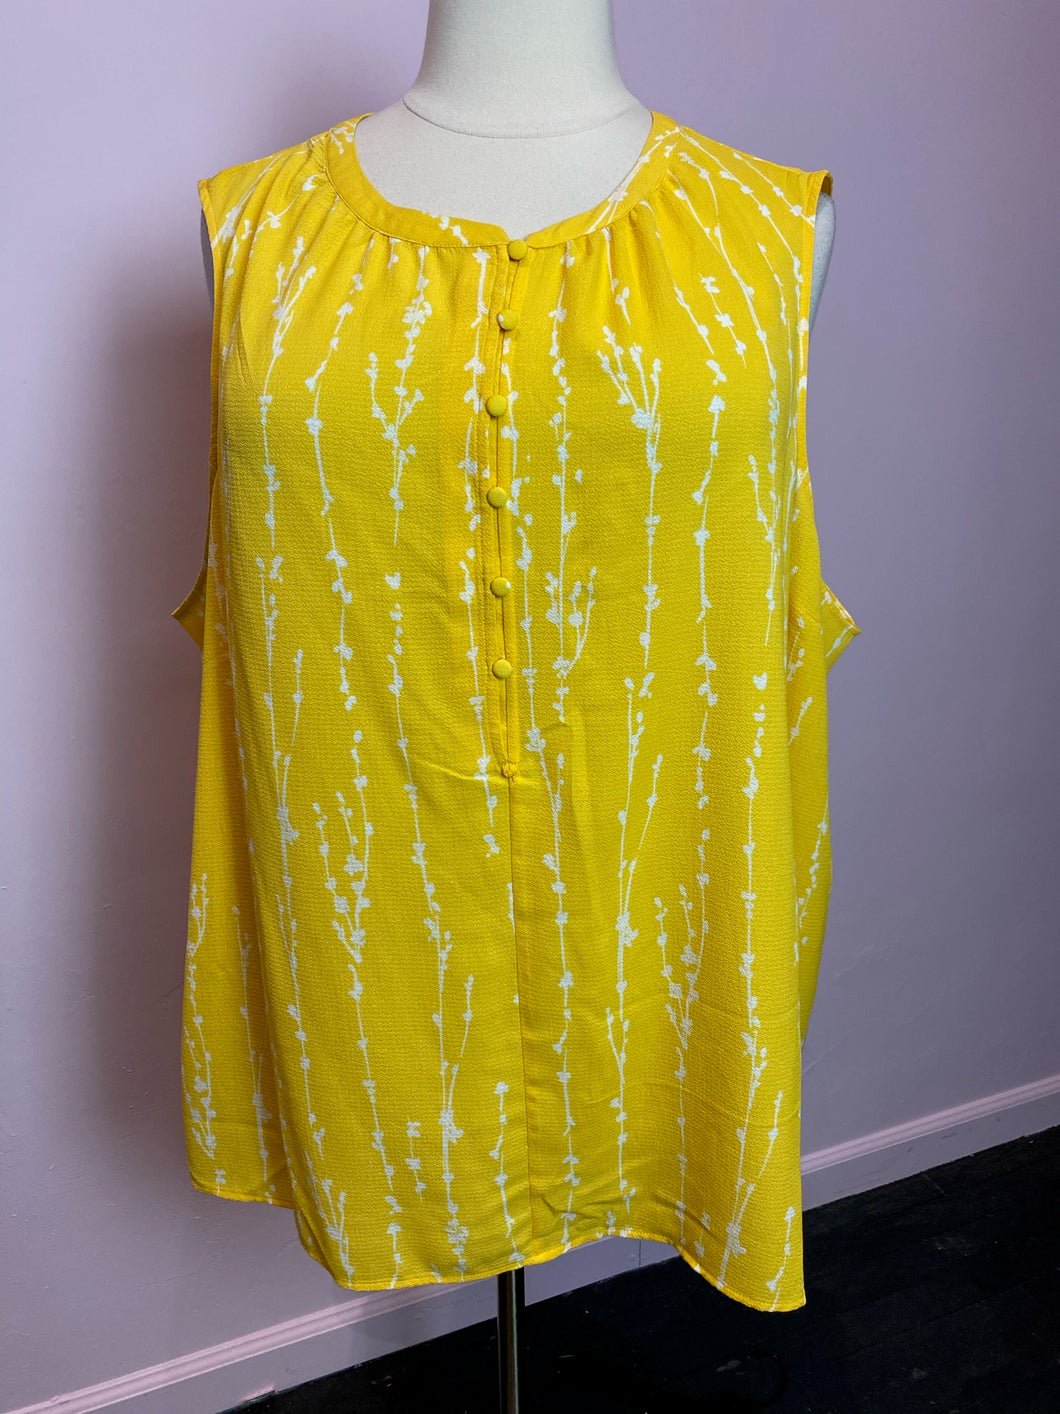 Lemon Yellow Sleeveless Top with White Branch Print by Ava & Viv, Size 4X